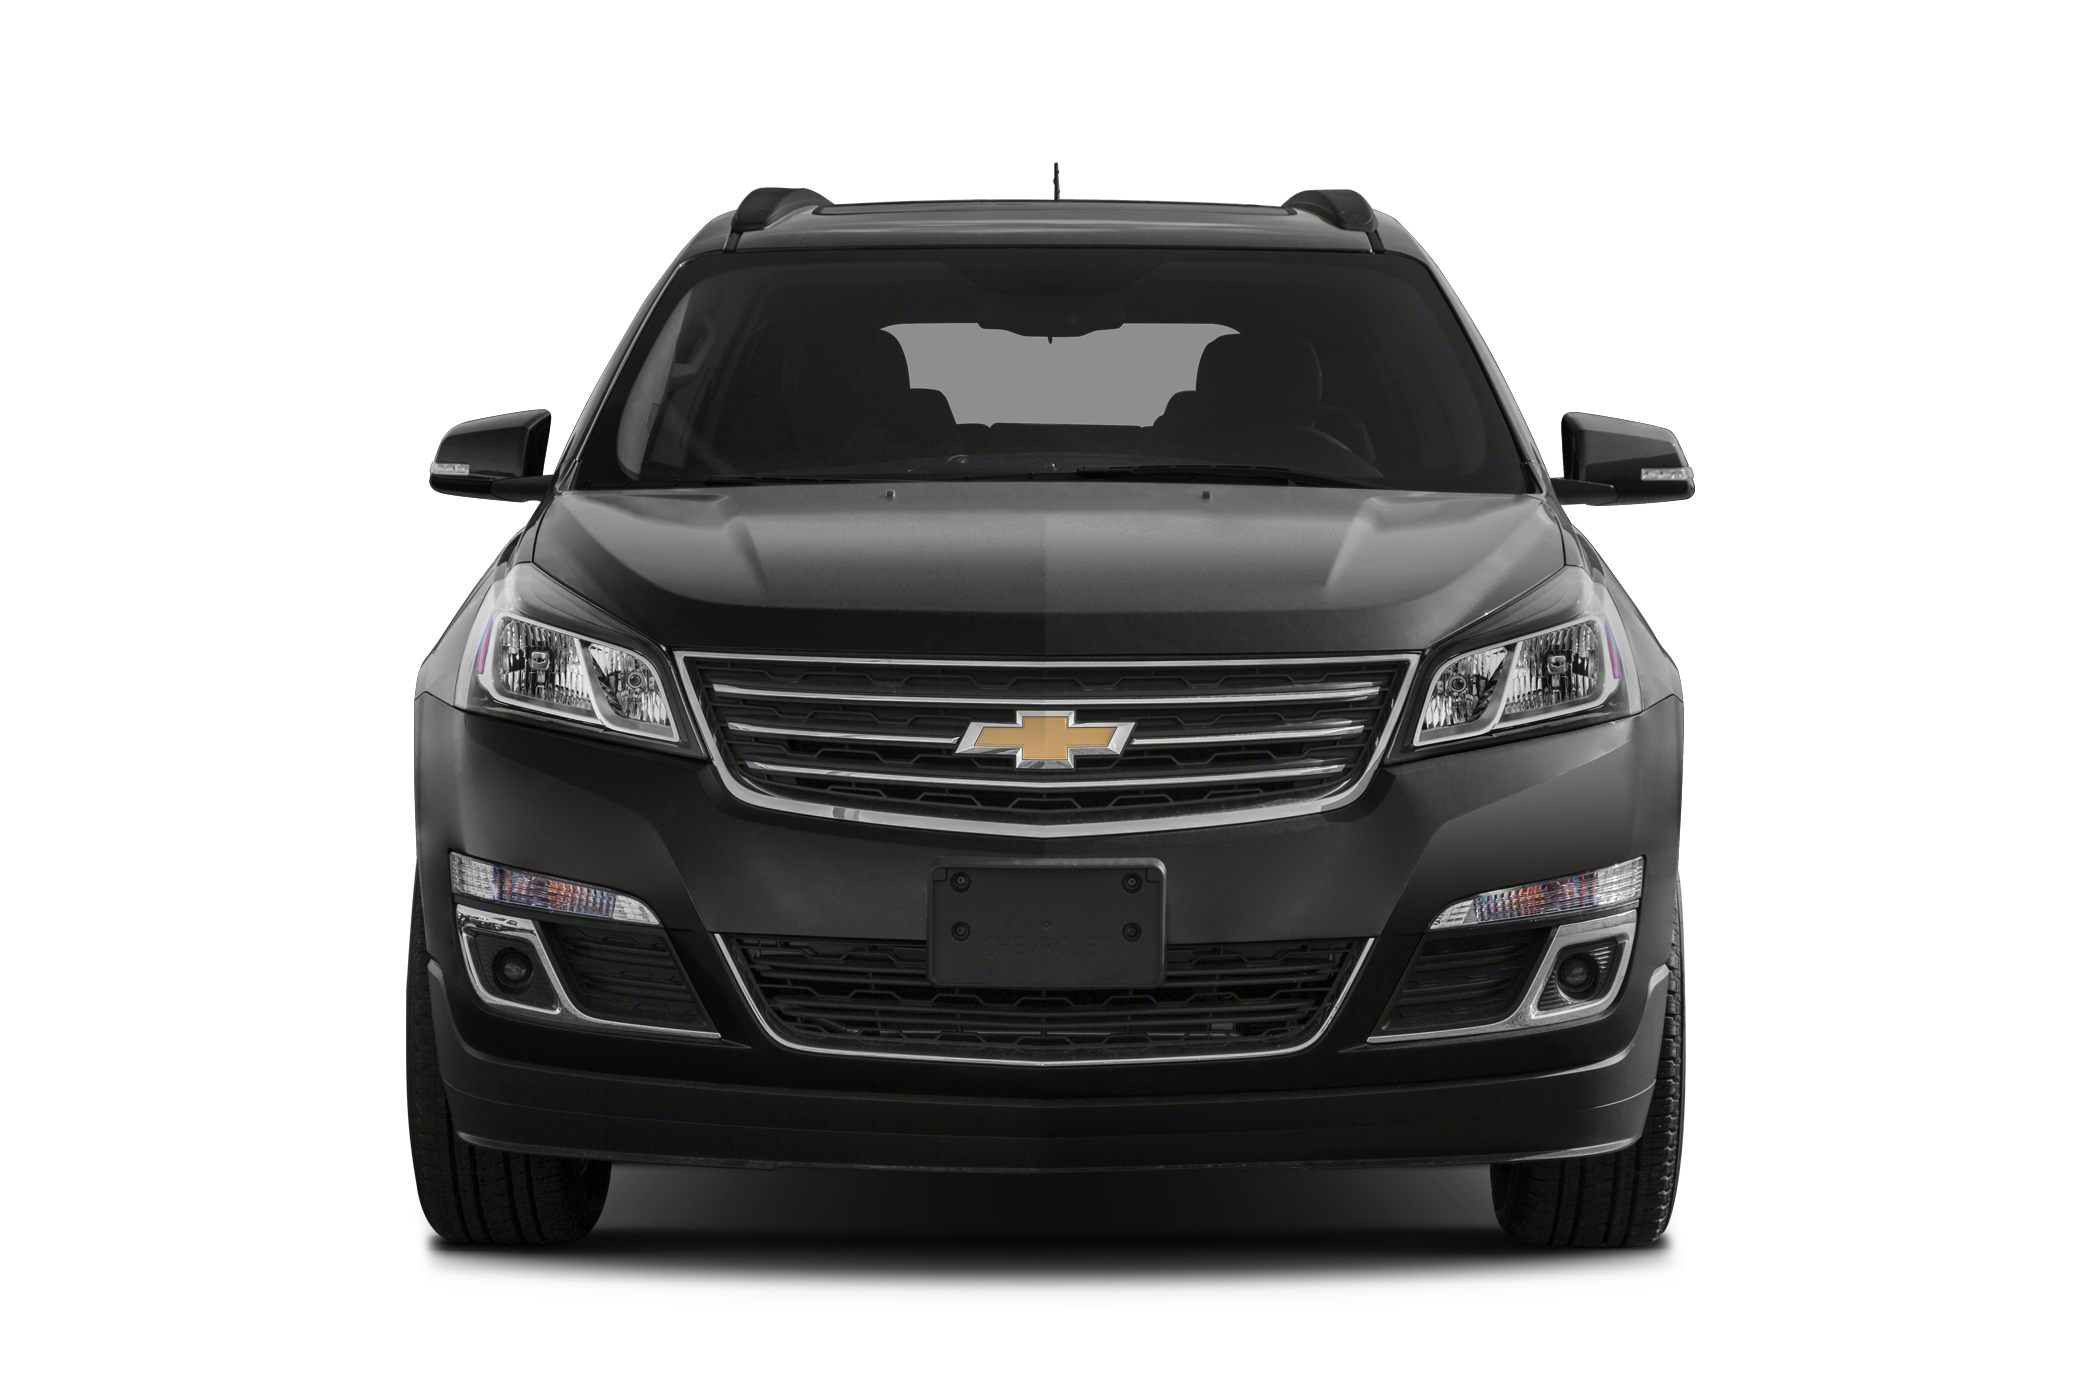 2014 Chevrolet Traverse front